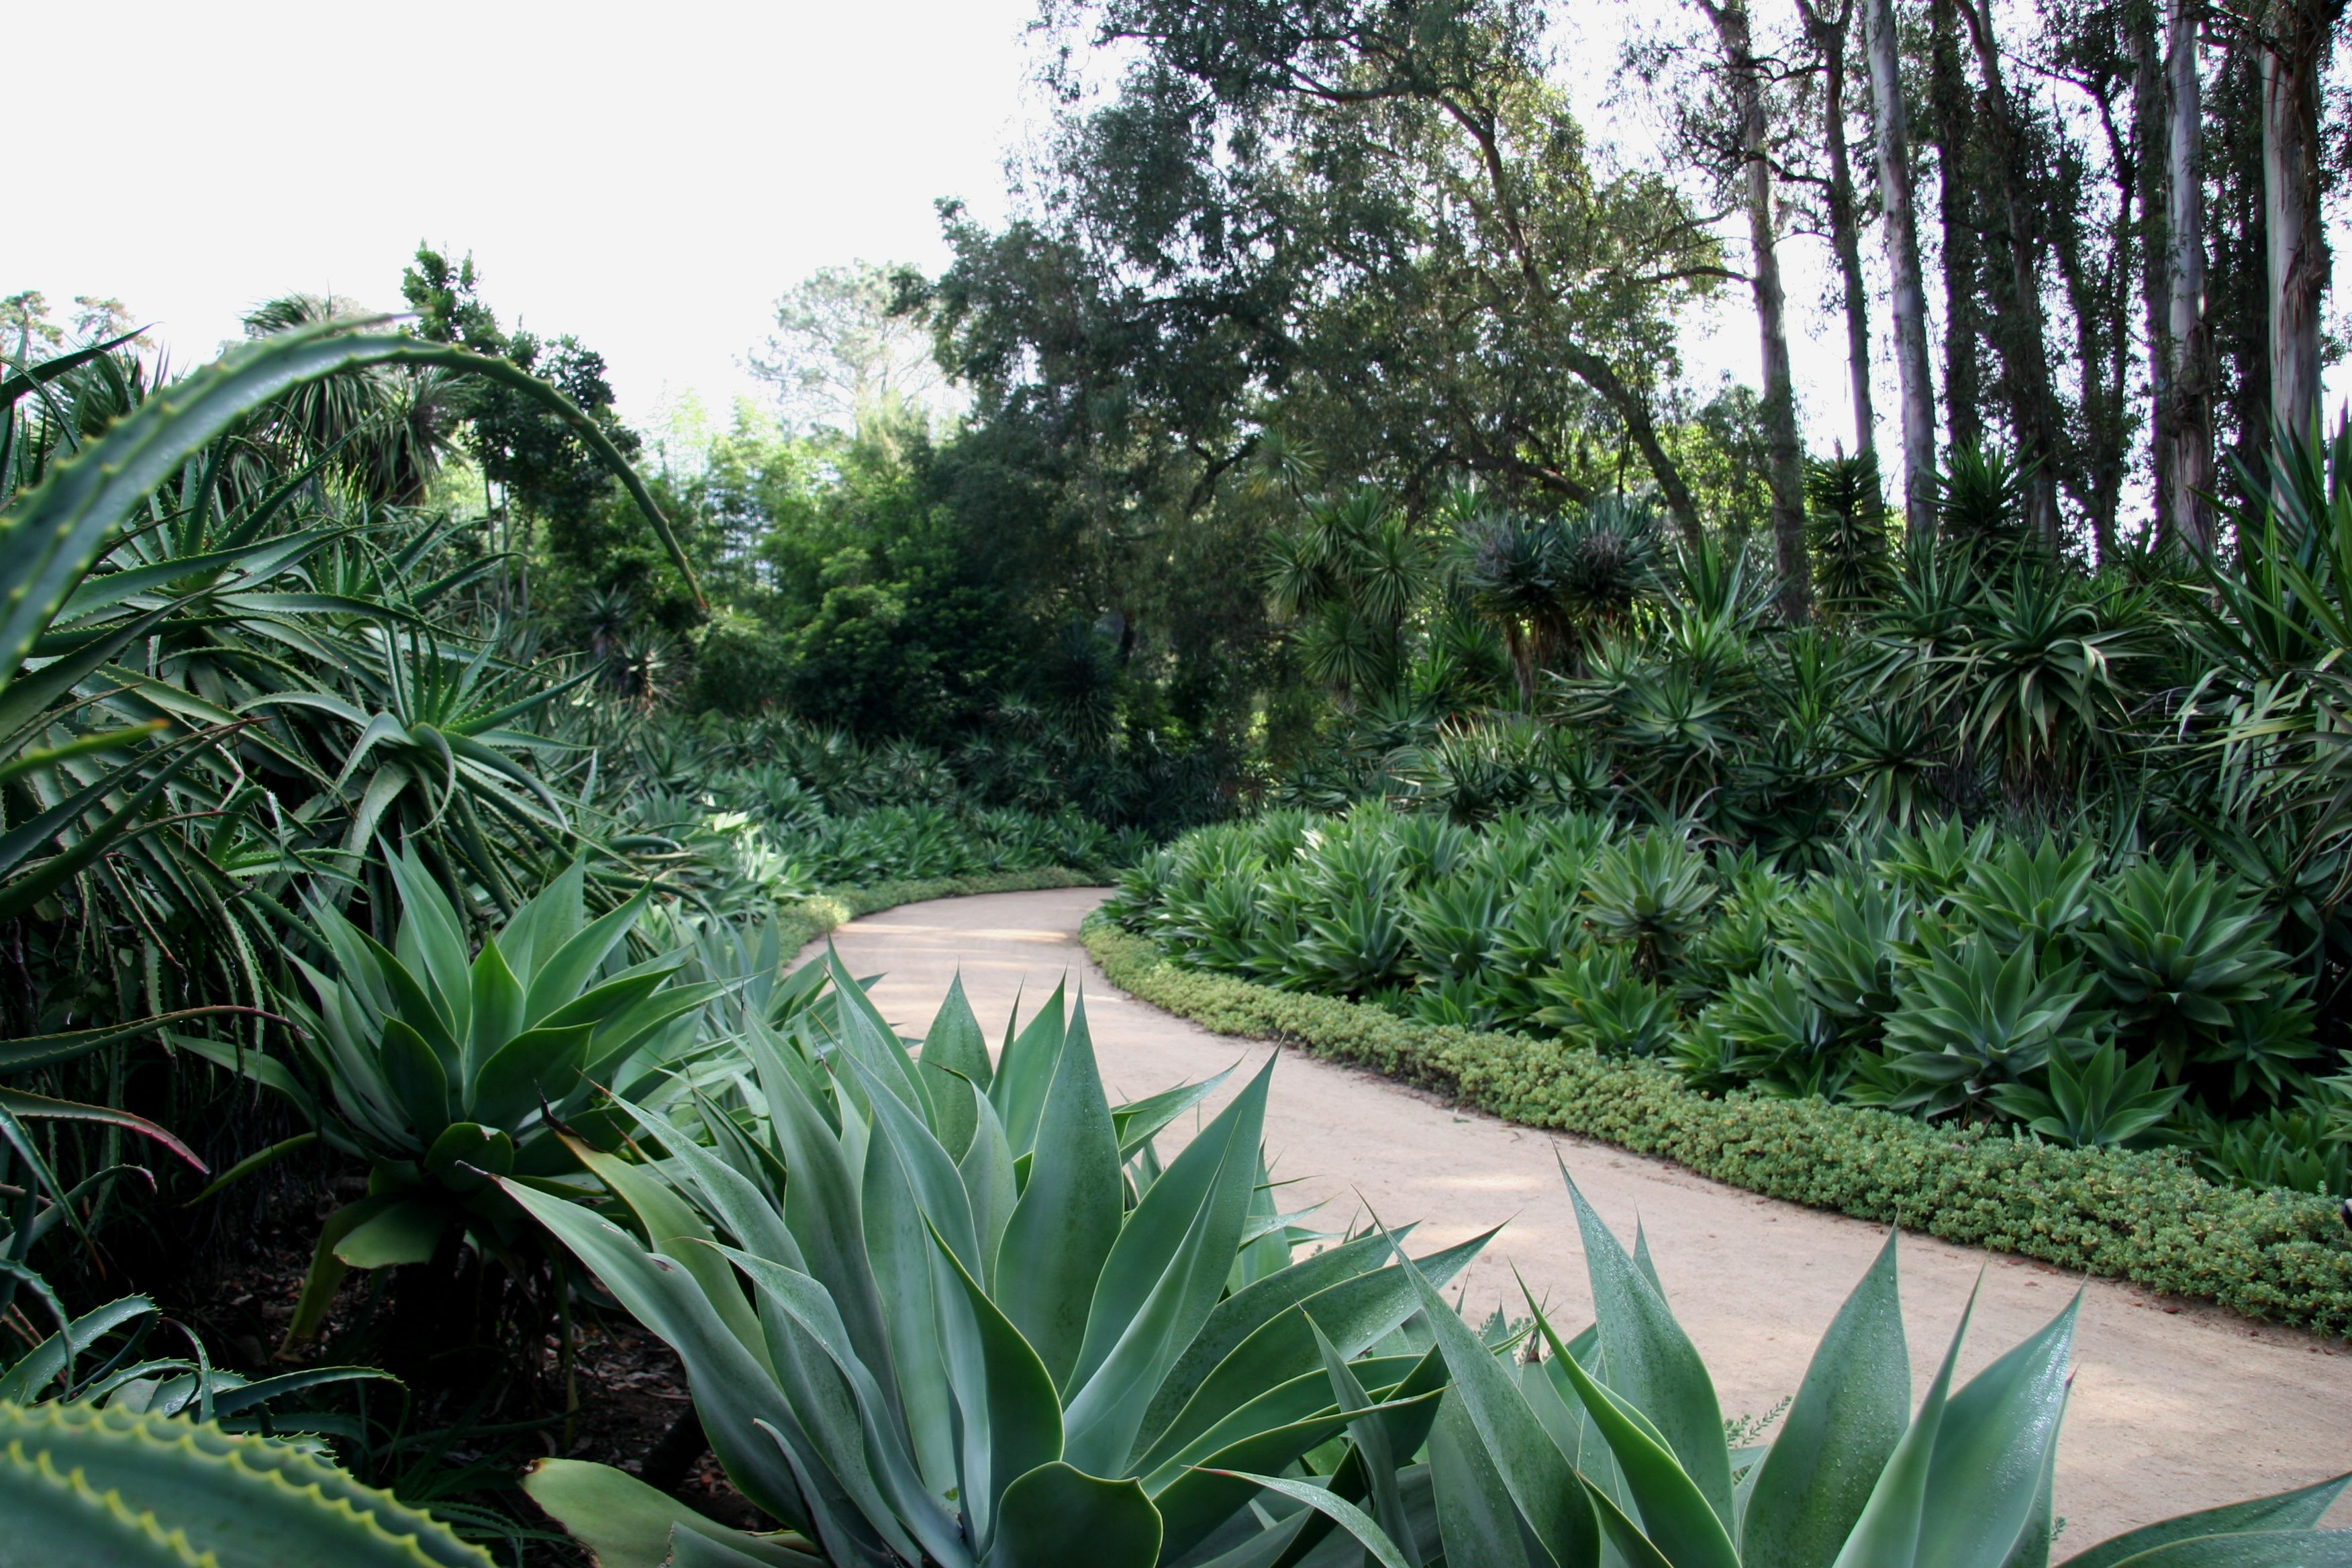 Chic Agave Attenuata For Garden Decoration Ideas: Inspiring Agave ...